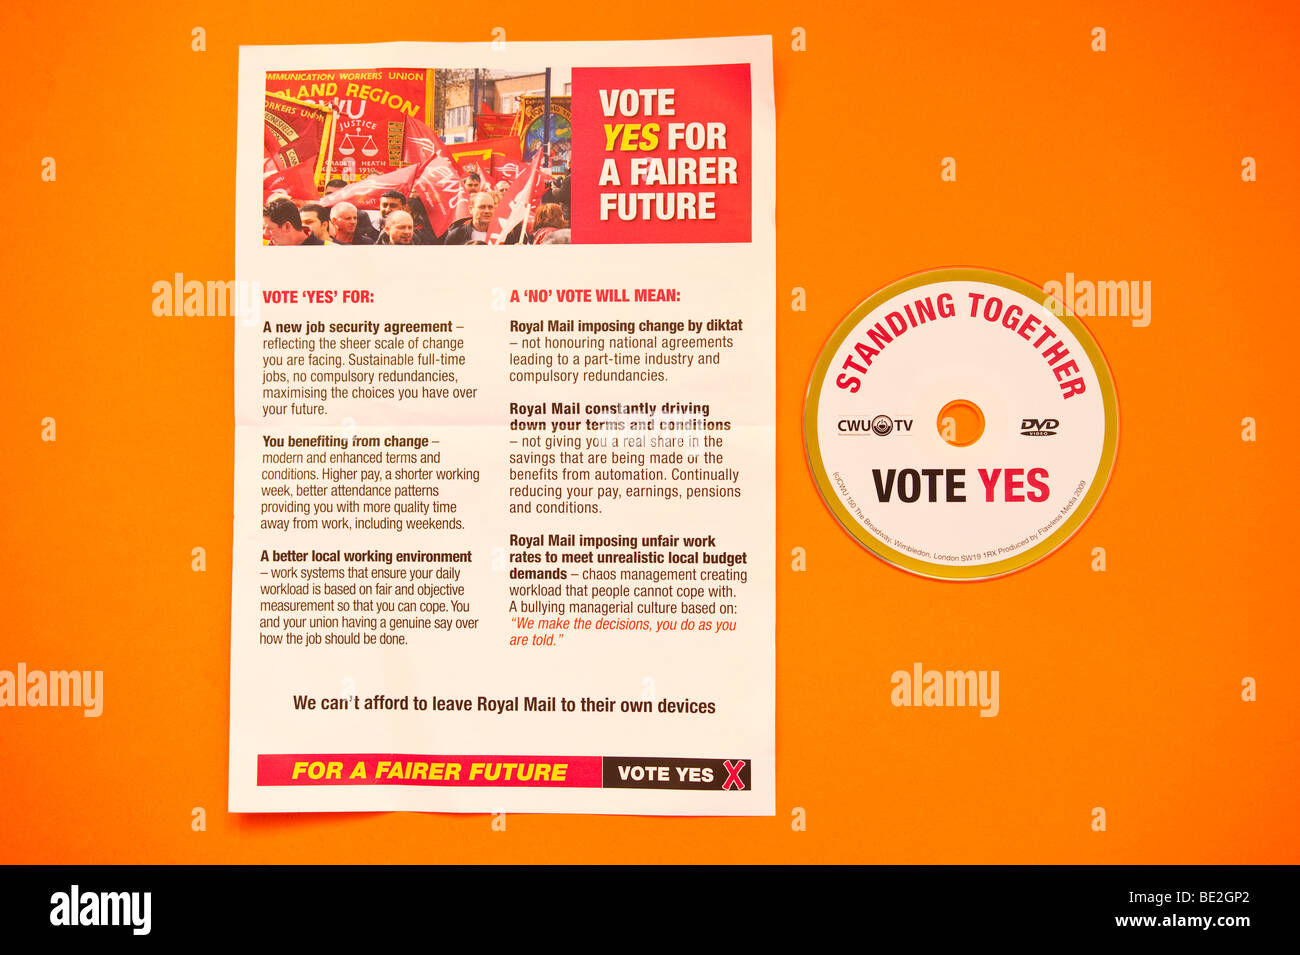 The official cwu leaflet & dvd sent to Royal Mail employees before the September 2009 national ballot asking - Stock Image